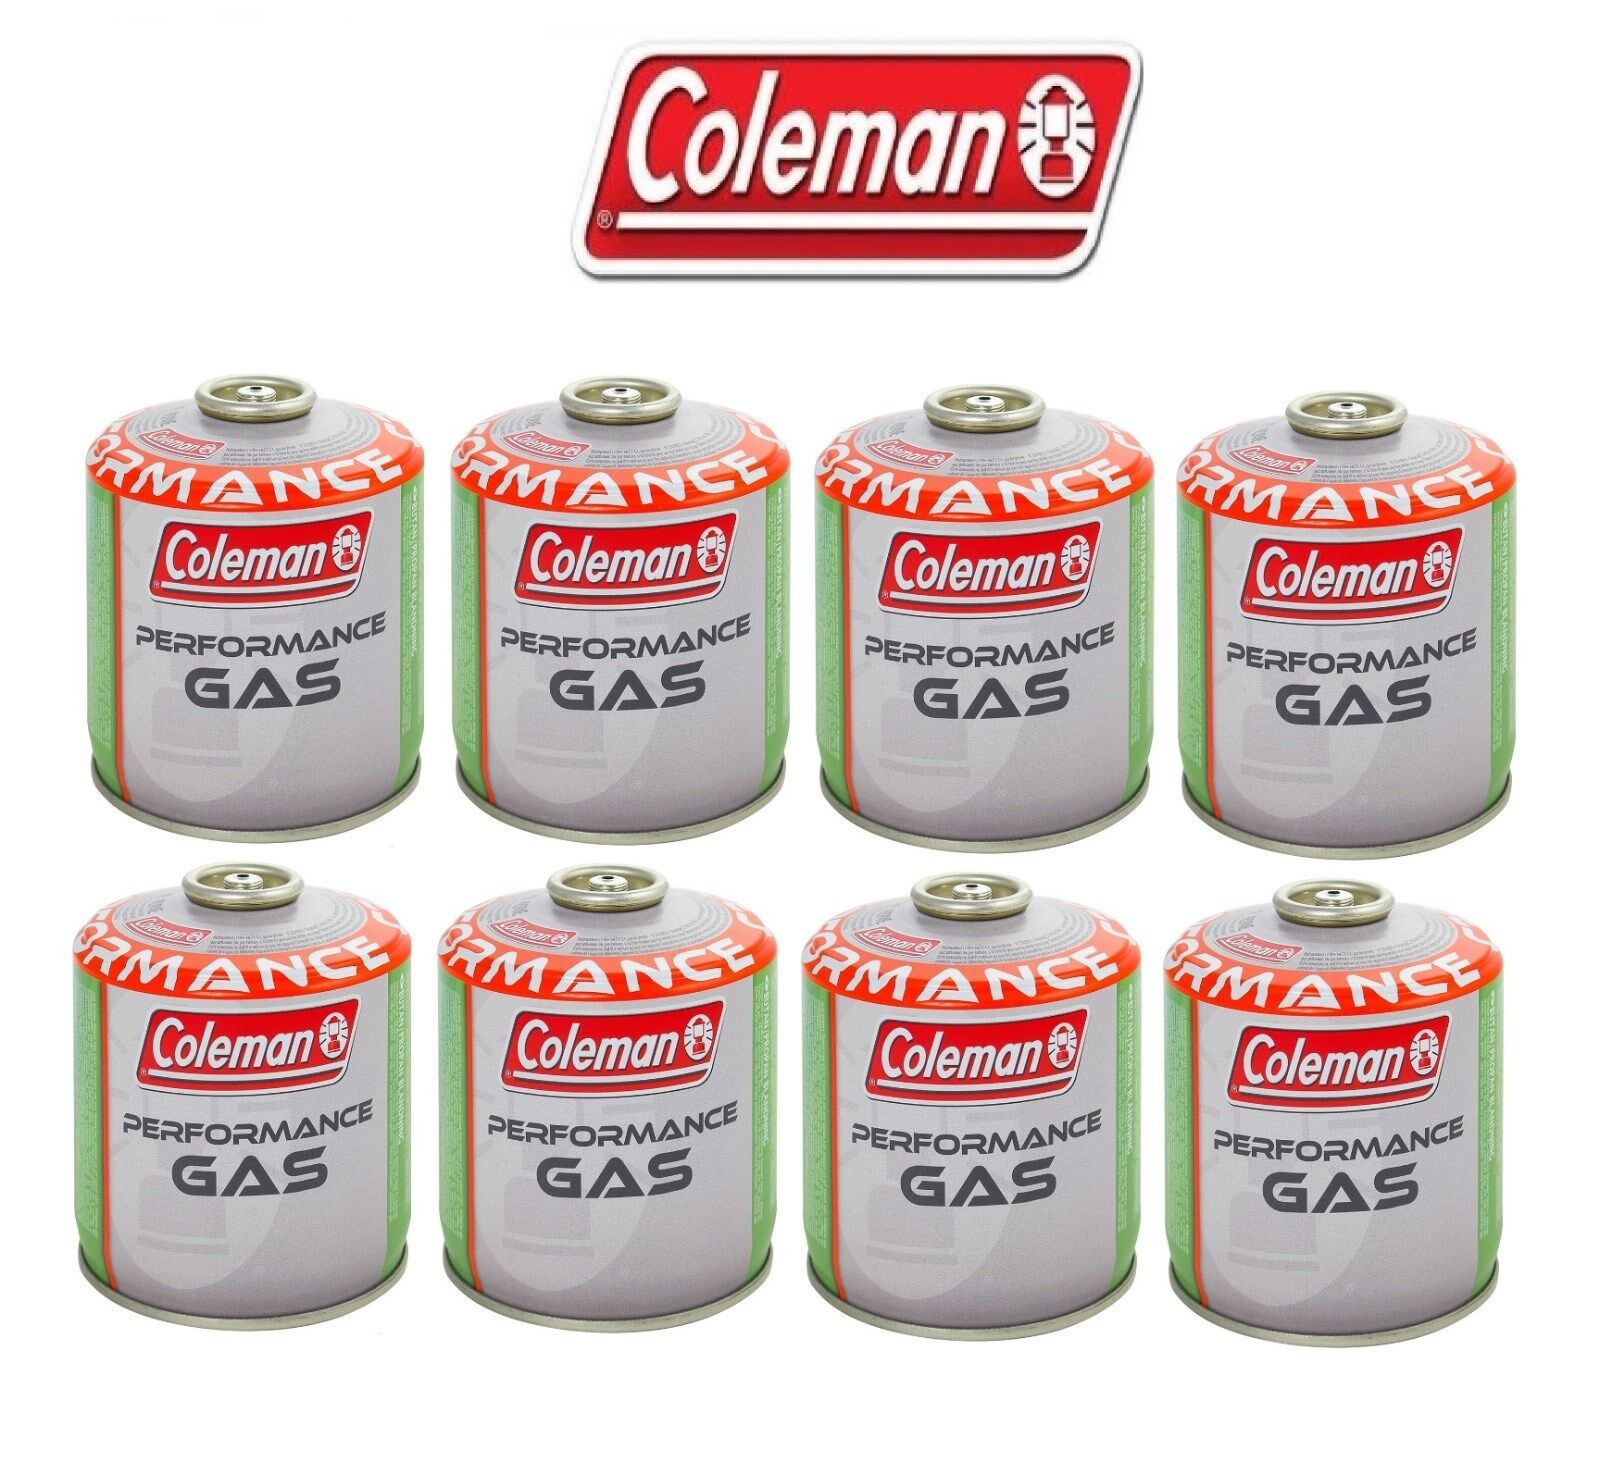 BOMBOLETTA CocheTUCCIA GAS COLEMAN c500 performance FILETTO 440 g GAS  8 PEZZI